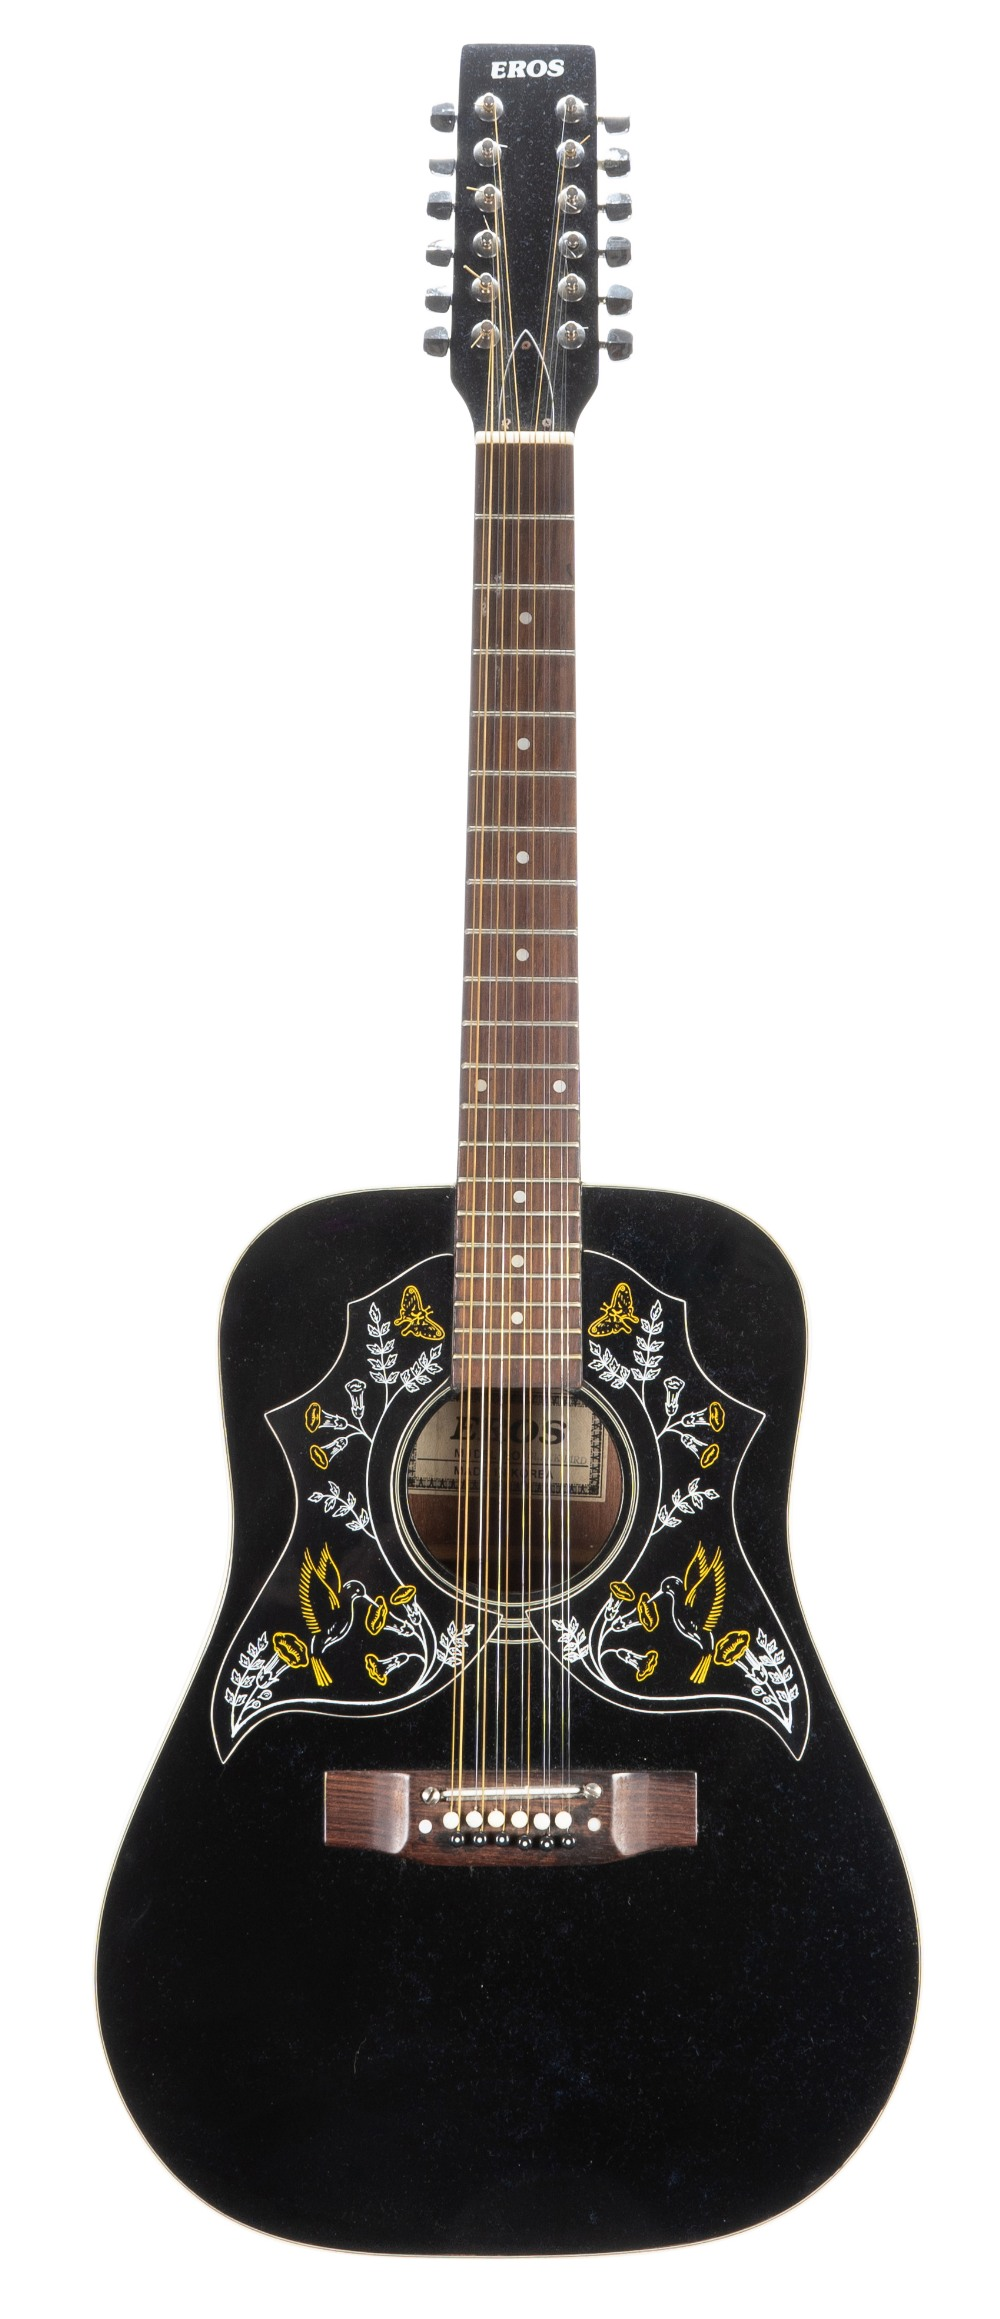 1970s Eros Blackbird twelve string acoustic guitar, made in Korea, hard case; together with a Kay